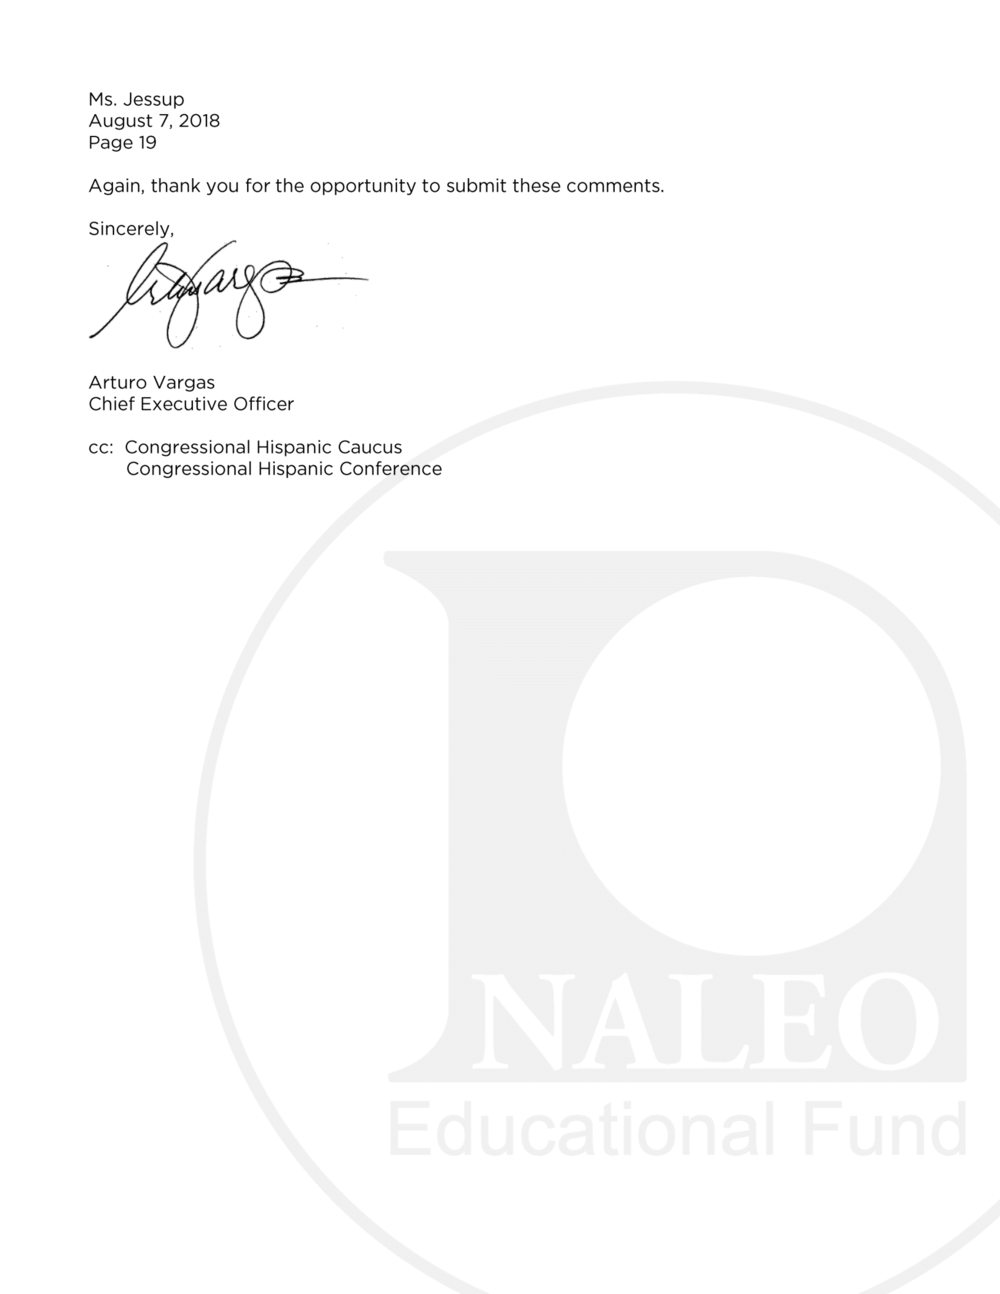 NALEO Ed Fund 2020 Census Comments 8.7.18-19.png